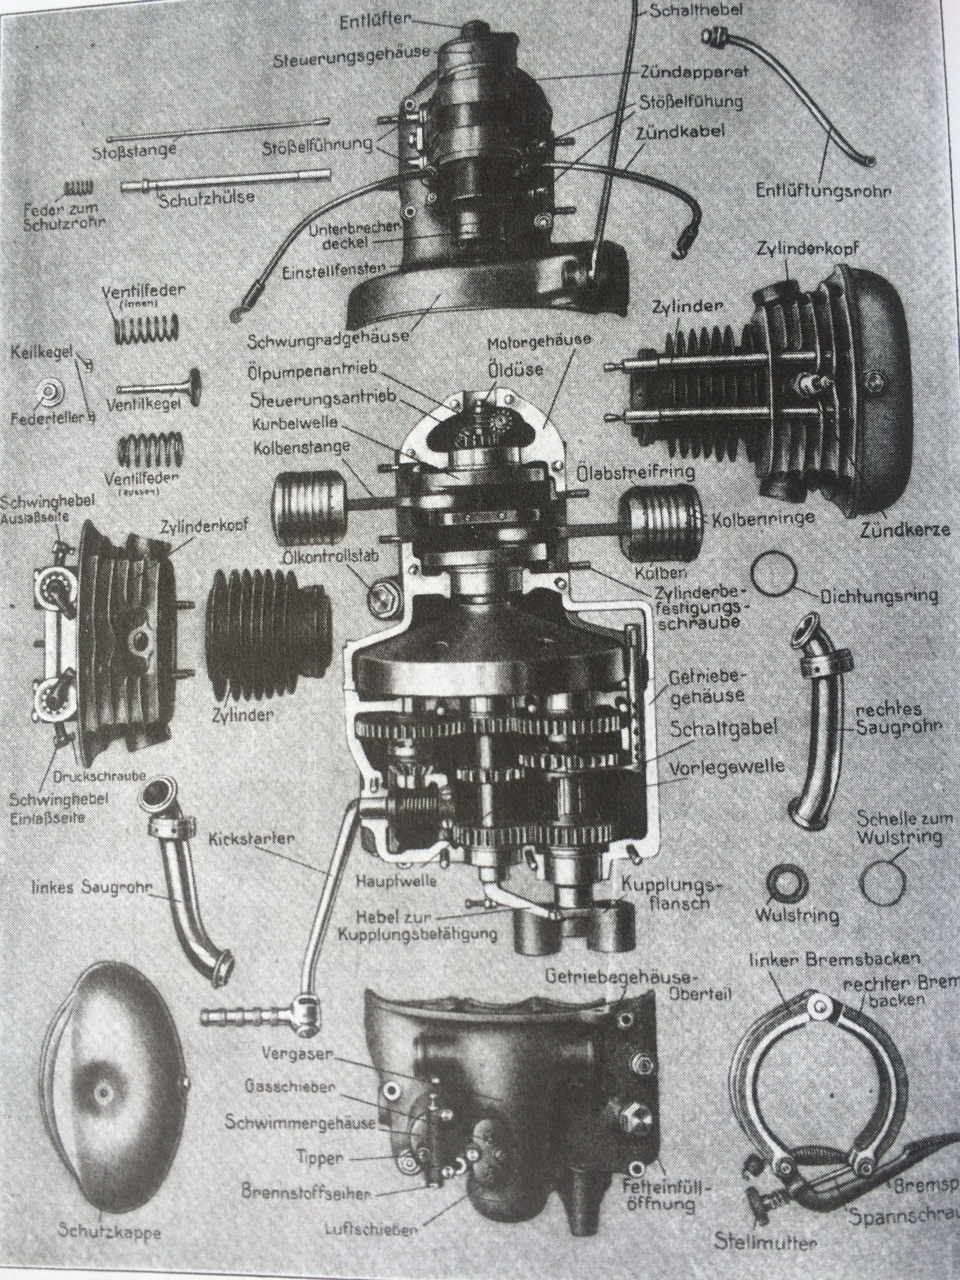 Yesterday When We Were Young S 23 Milwaukee V Twin Harley Wasserboxer Engine Diagram Attachment 243057